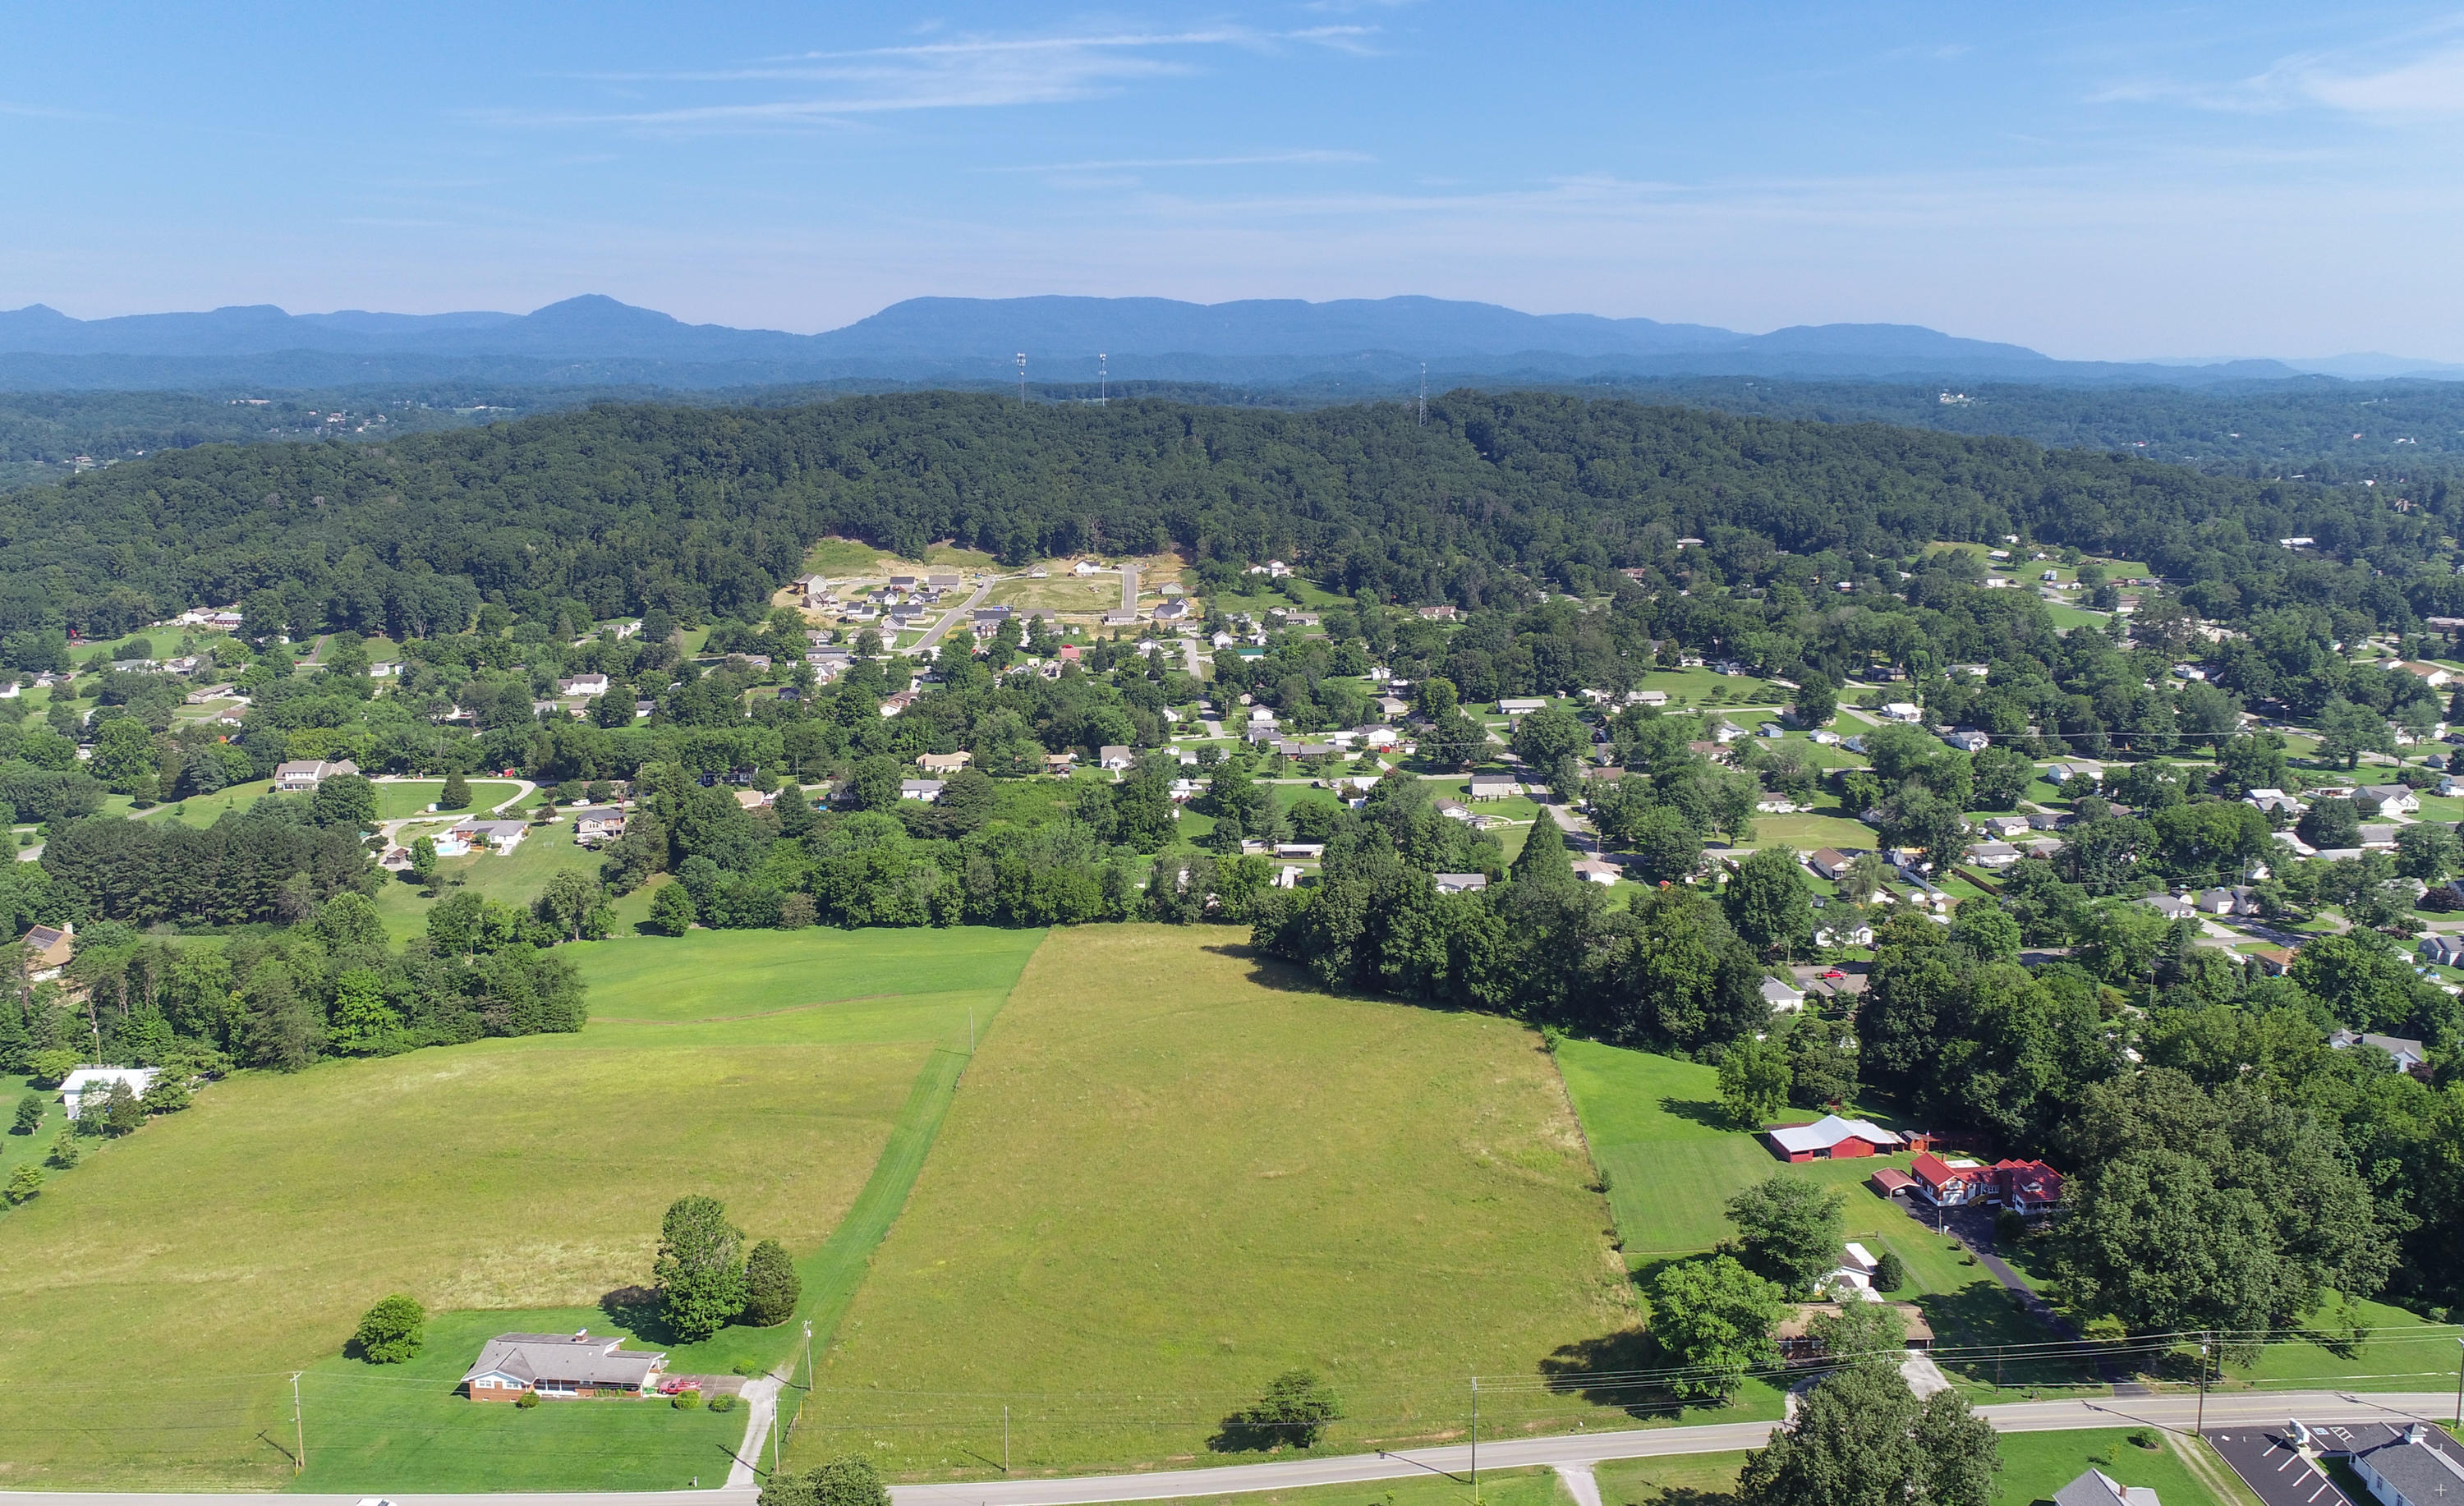 20190702003457084126000000-o Clinton anderson county homes for sale